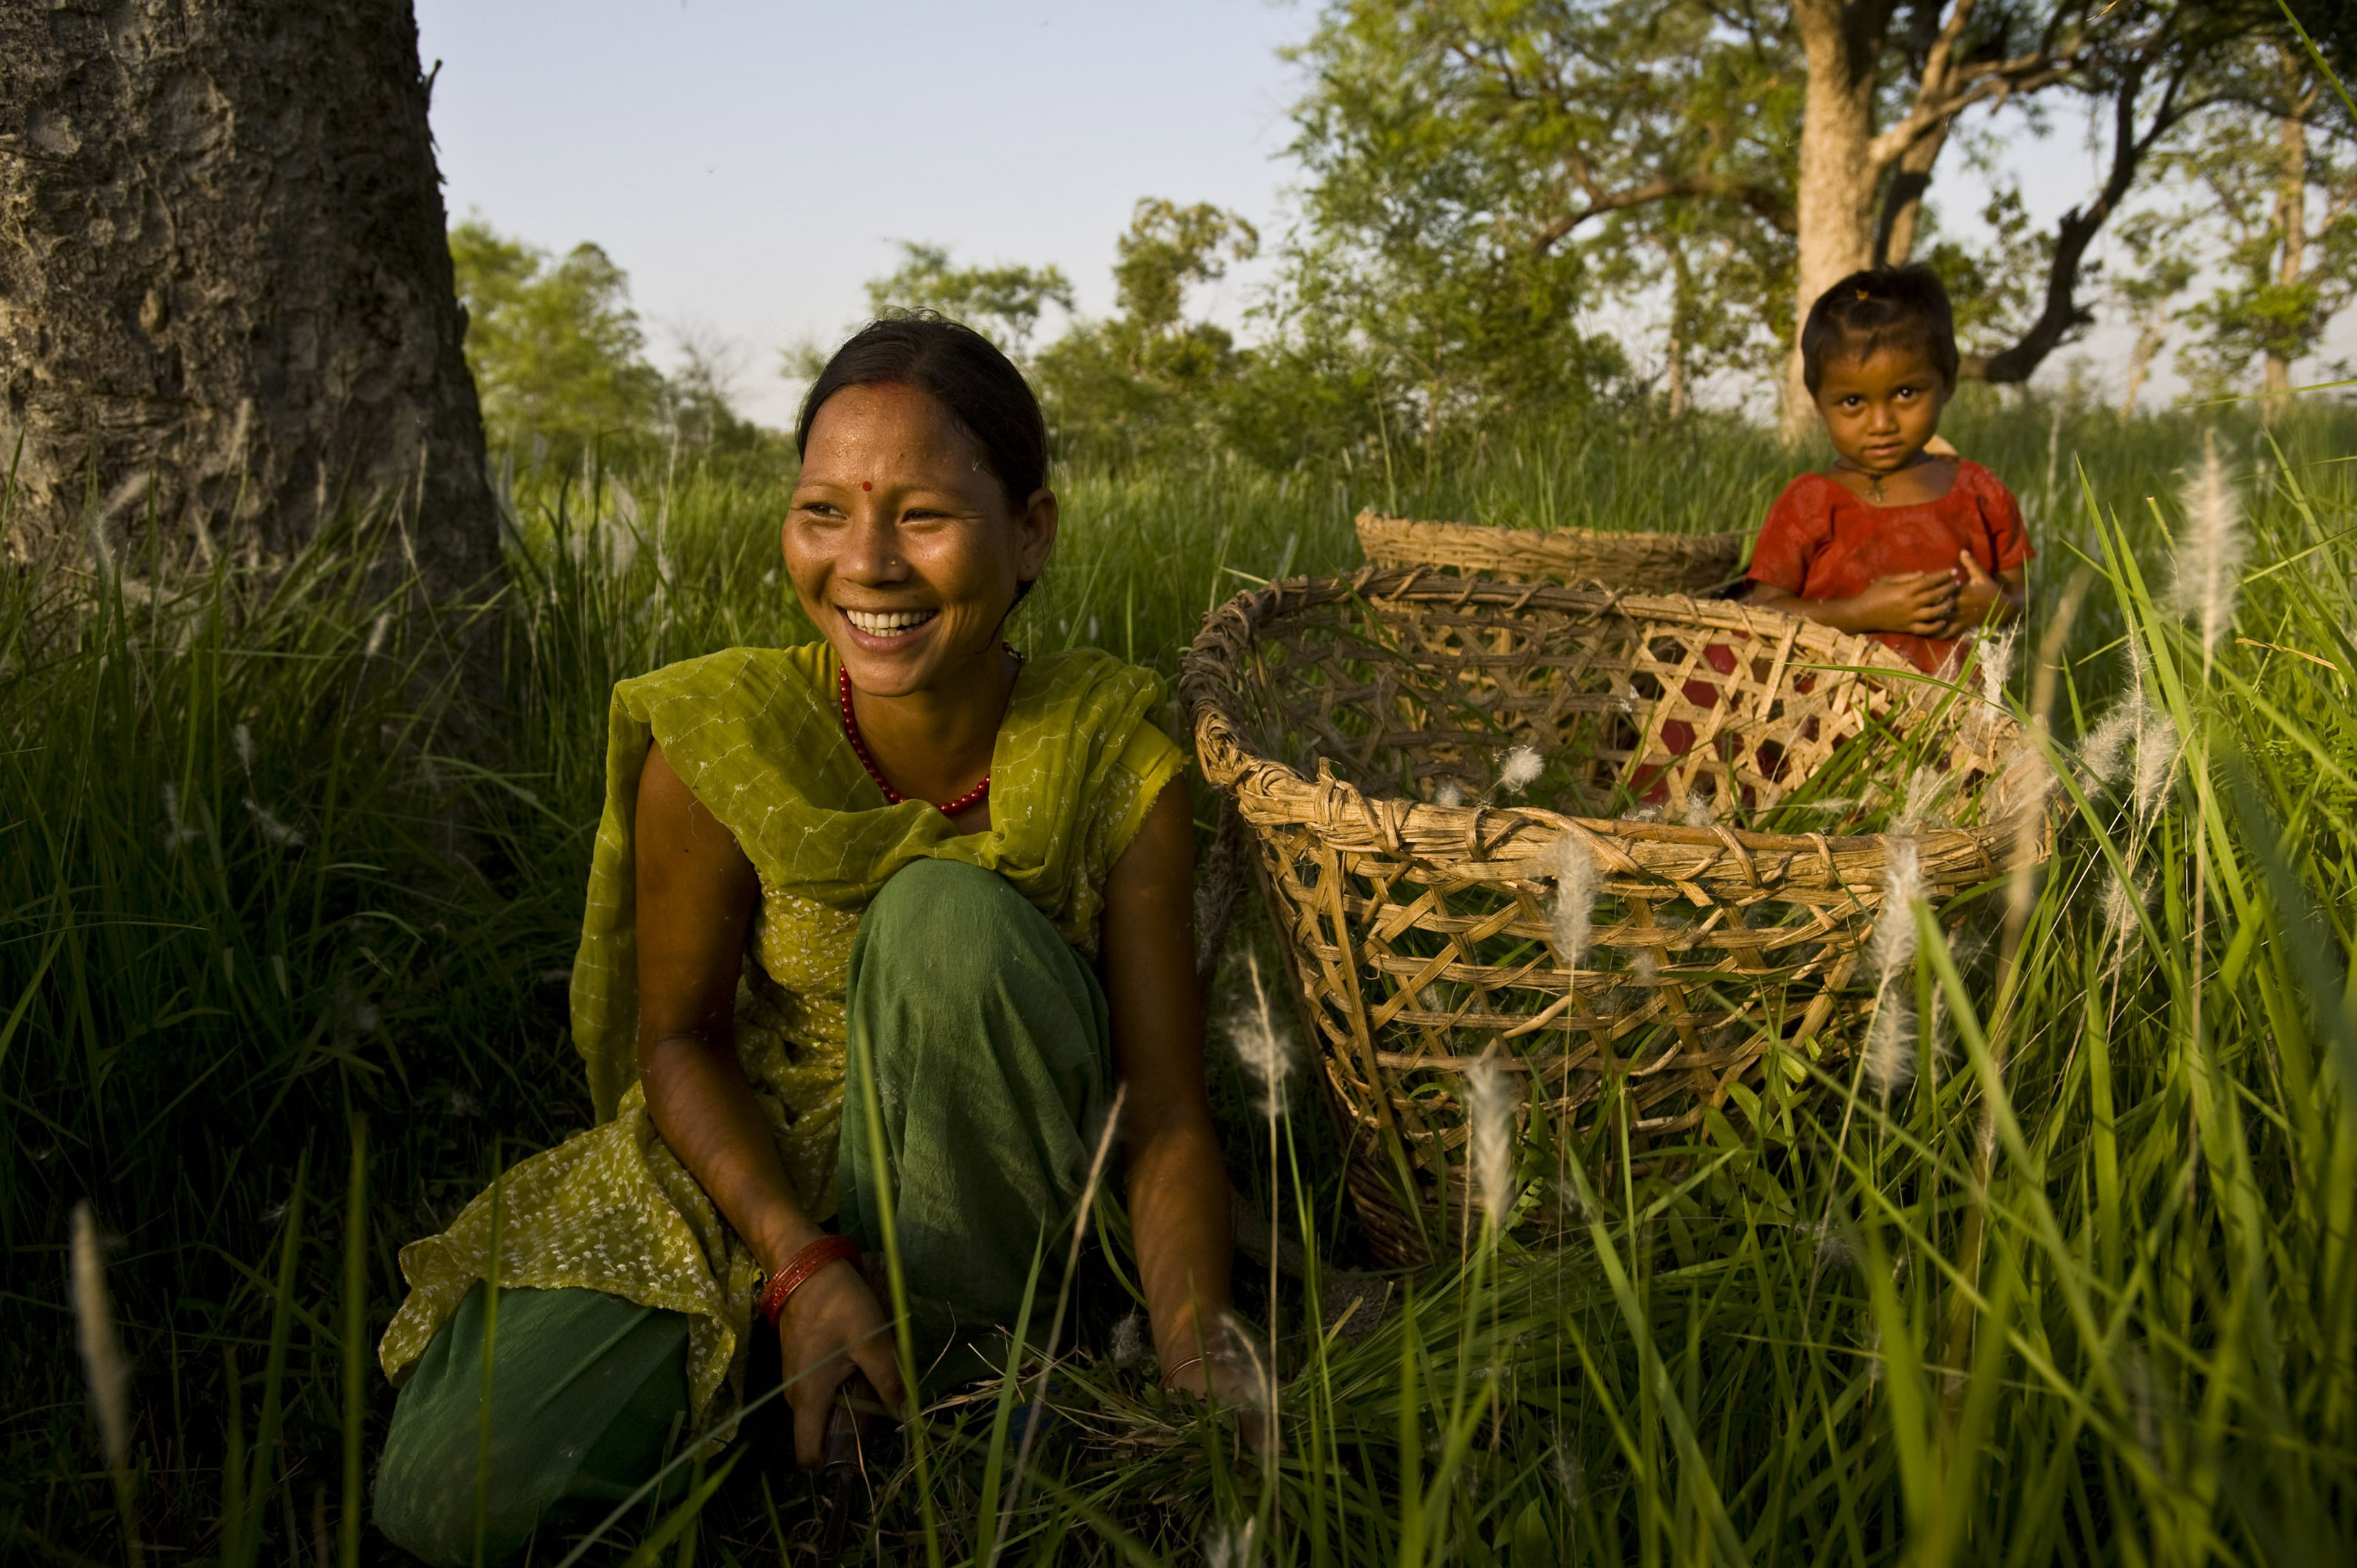 Women in Nepal tending to the grasses